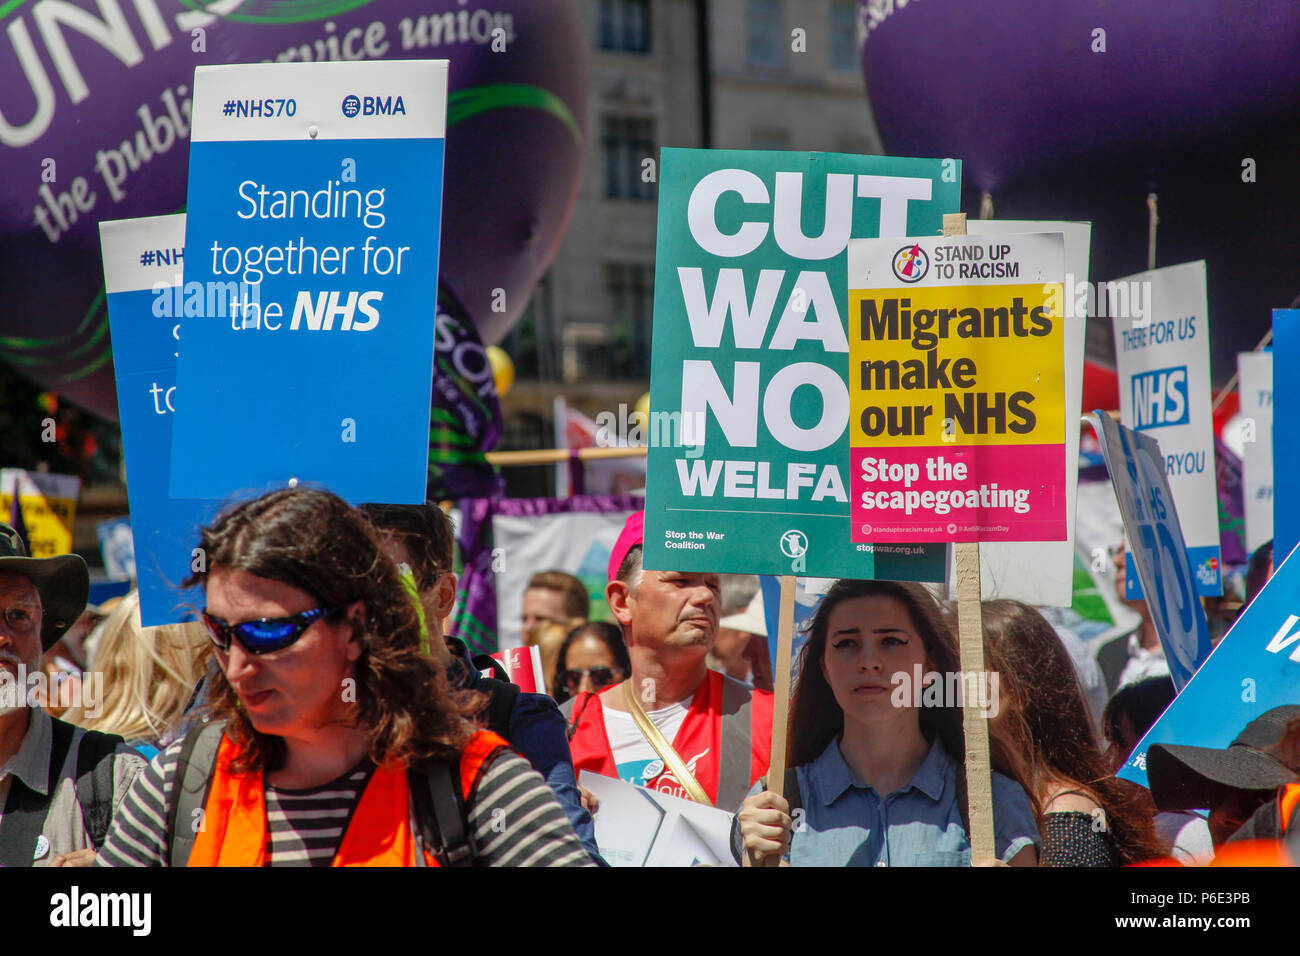 London, UK, 30 June 2018. Demonstrators at the NHS's 70th Birthday March Credit: Alex Cavendish/Alamy Live News - Stock Image